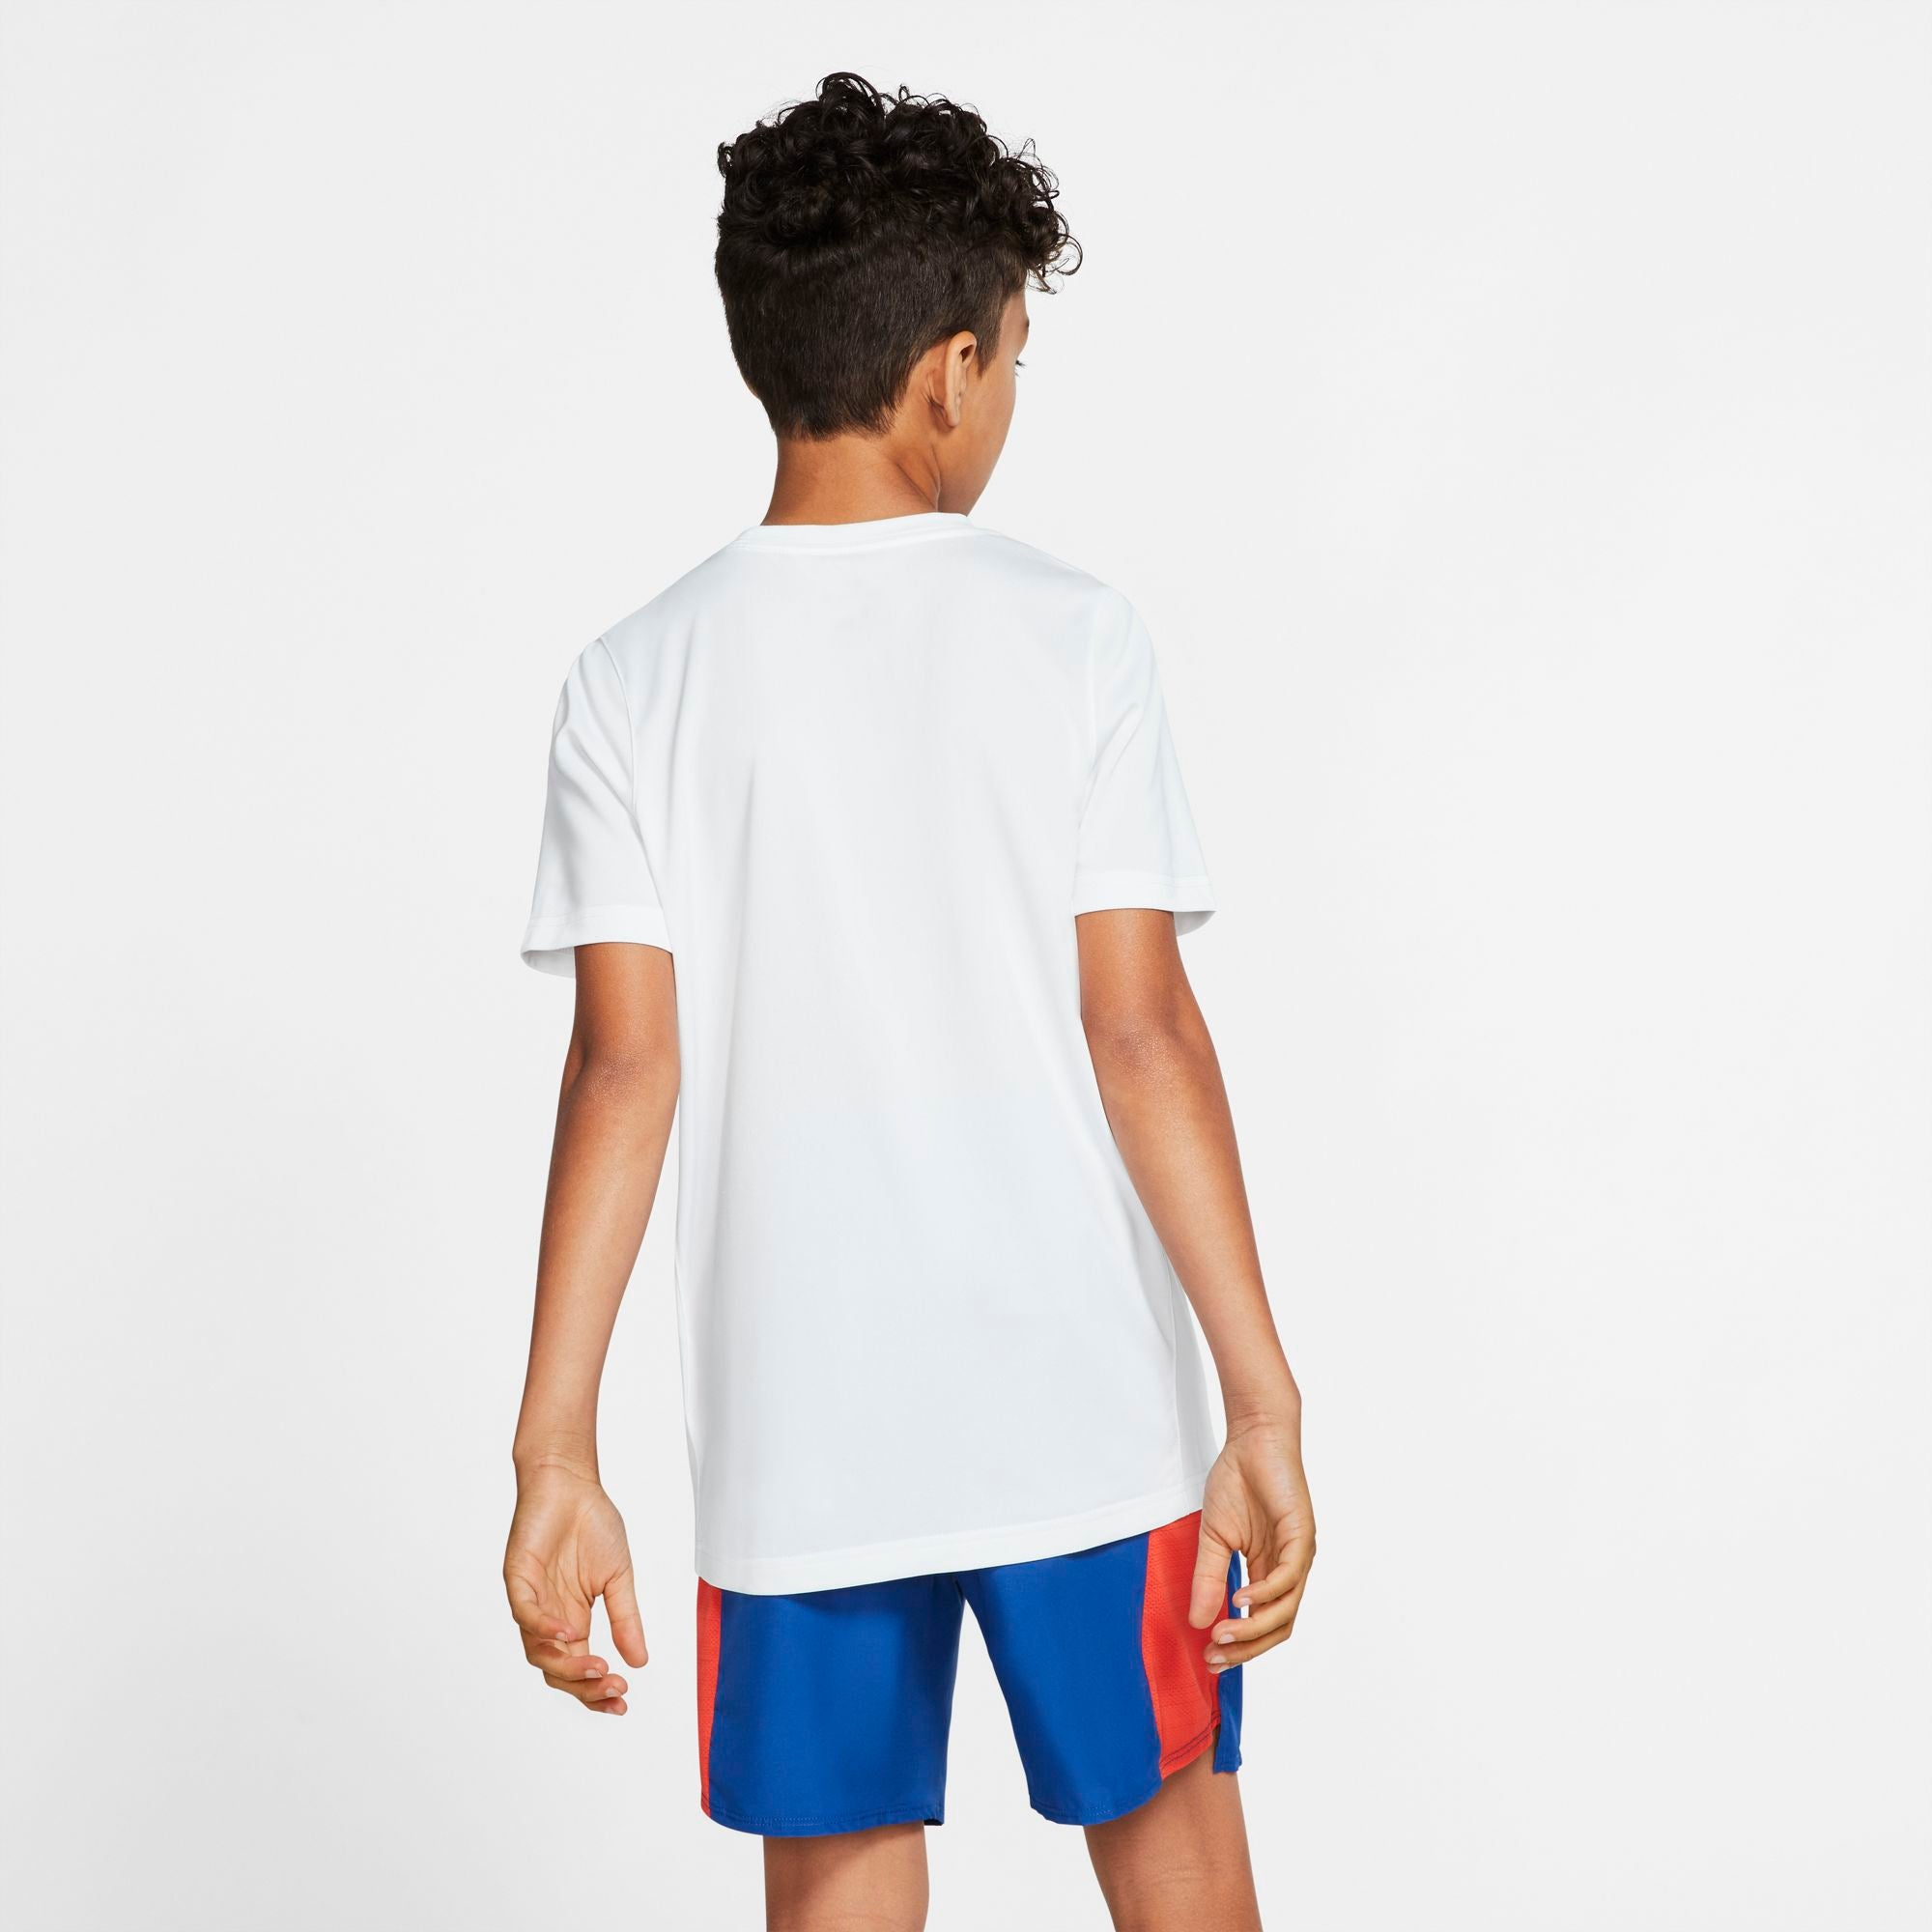 Nike Kids Dri-fit Just Do It Tee - White